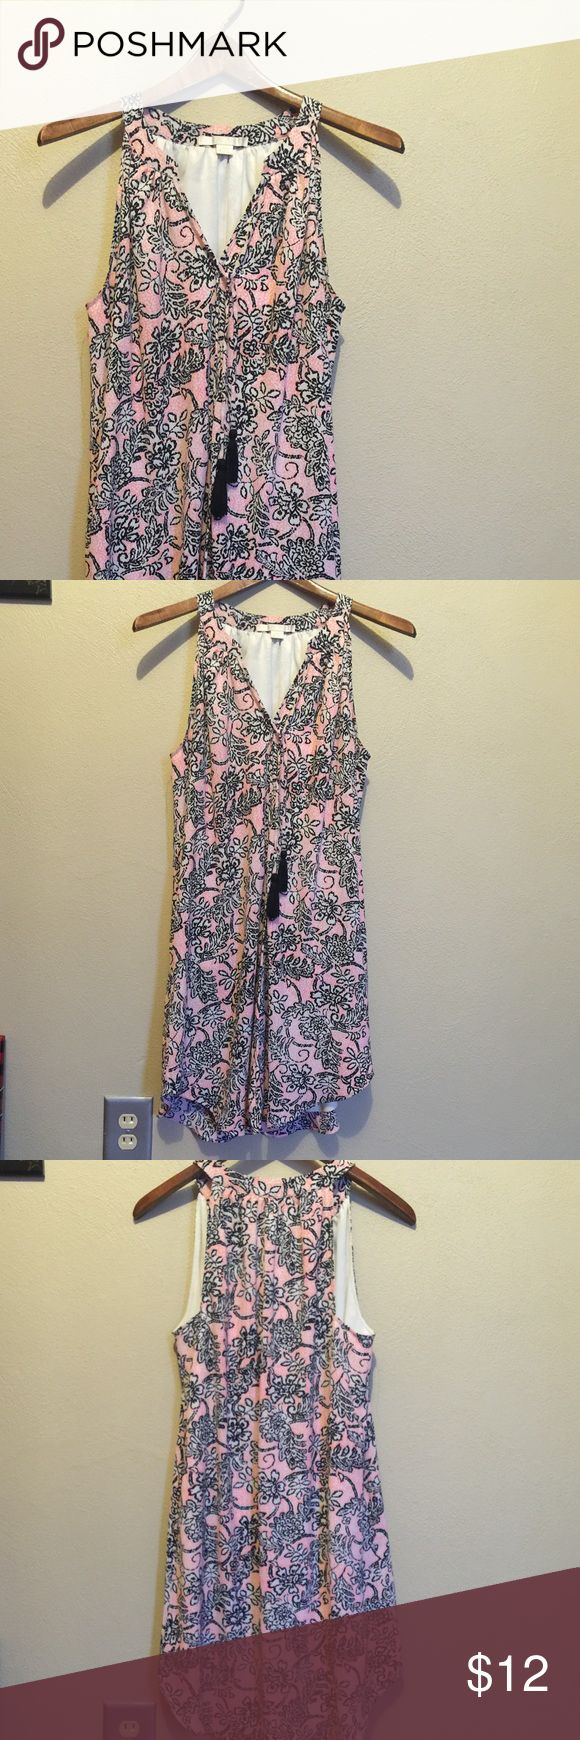 """fun paisley print dress has a built in slip and is about right above knee length on me (im 5'5"""") worn once to a wedding! 🔹 literally any time you bundle 3 items, offer me $15 and i will ALWAYS accept! even if one of the items is originally listed for $15! i believe in good deals and helping others get good deals! no exceptions! 🔹 Dresses Mini"""